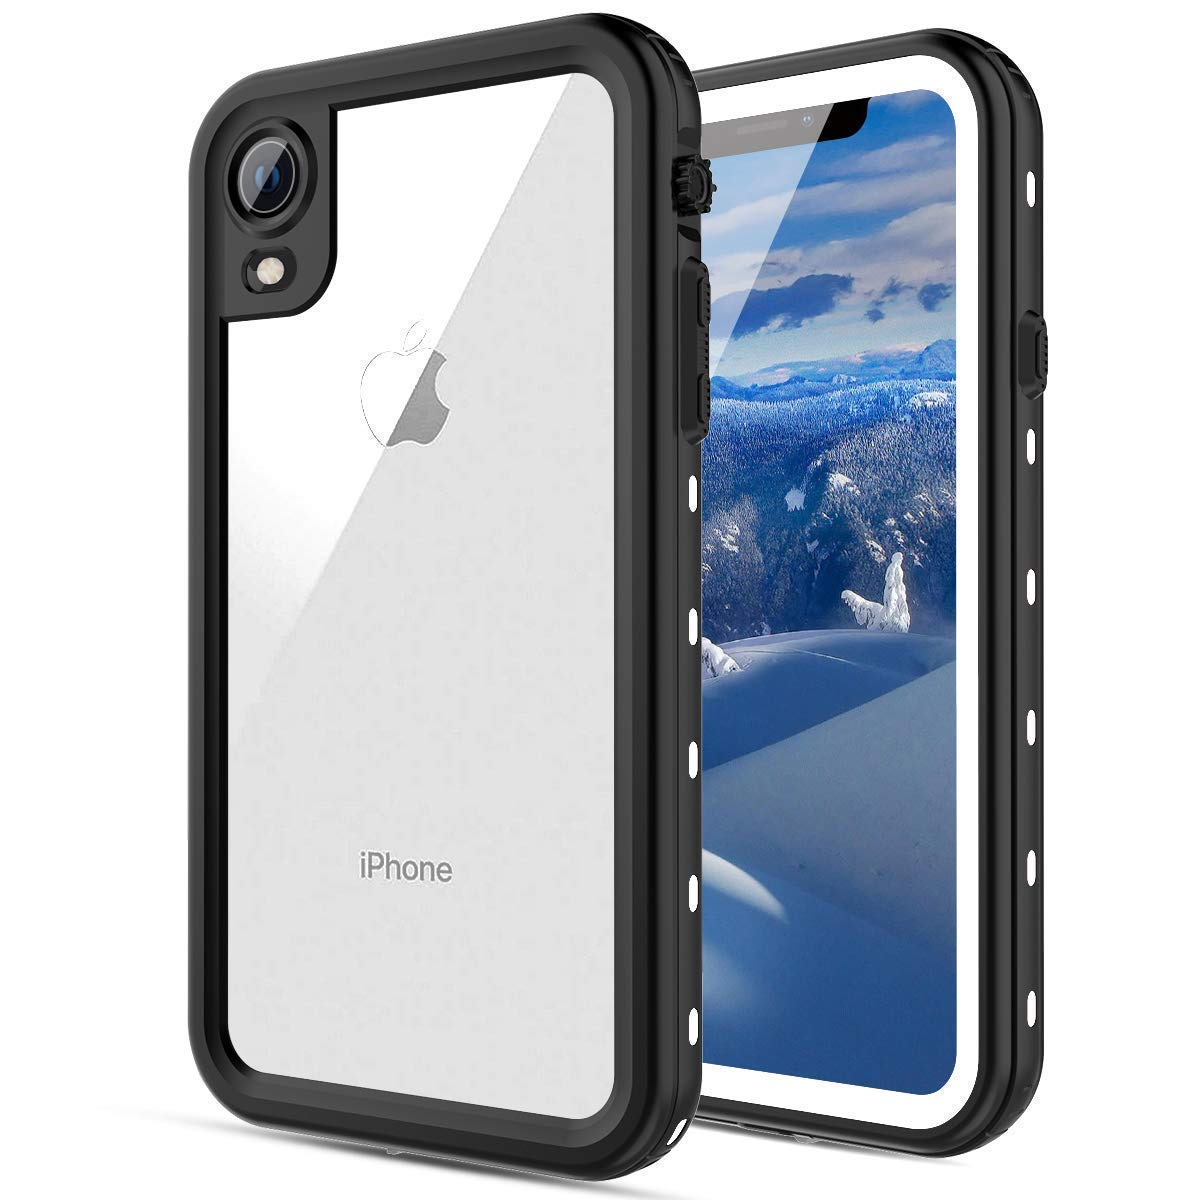 FXXXLTF Case for iPhone XR, iPhone XR Waterproof Cover Heavy Duty Full Body Protective Clear Slim Case Shockproof Snowproof Ultra Hybrid Compatible with iPhone XR 2018 (6.1 Inch,White) by FXXXLTF